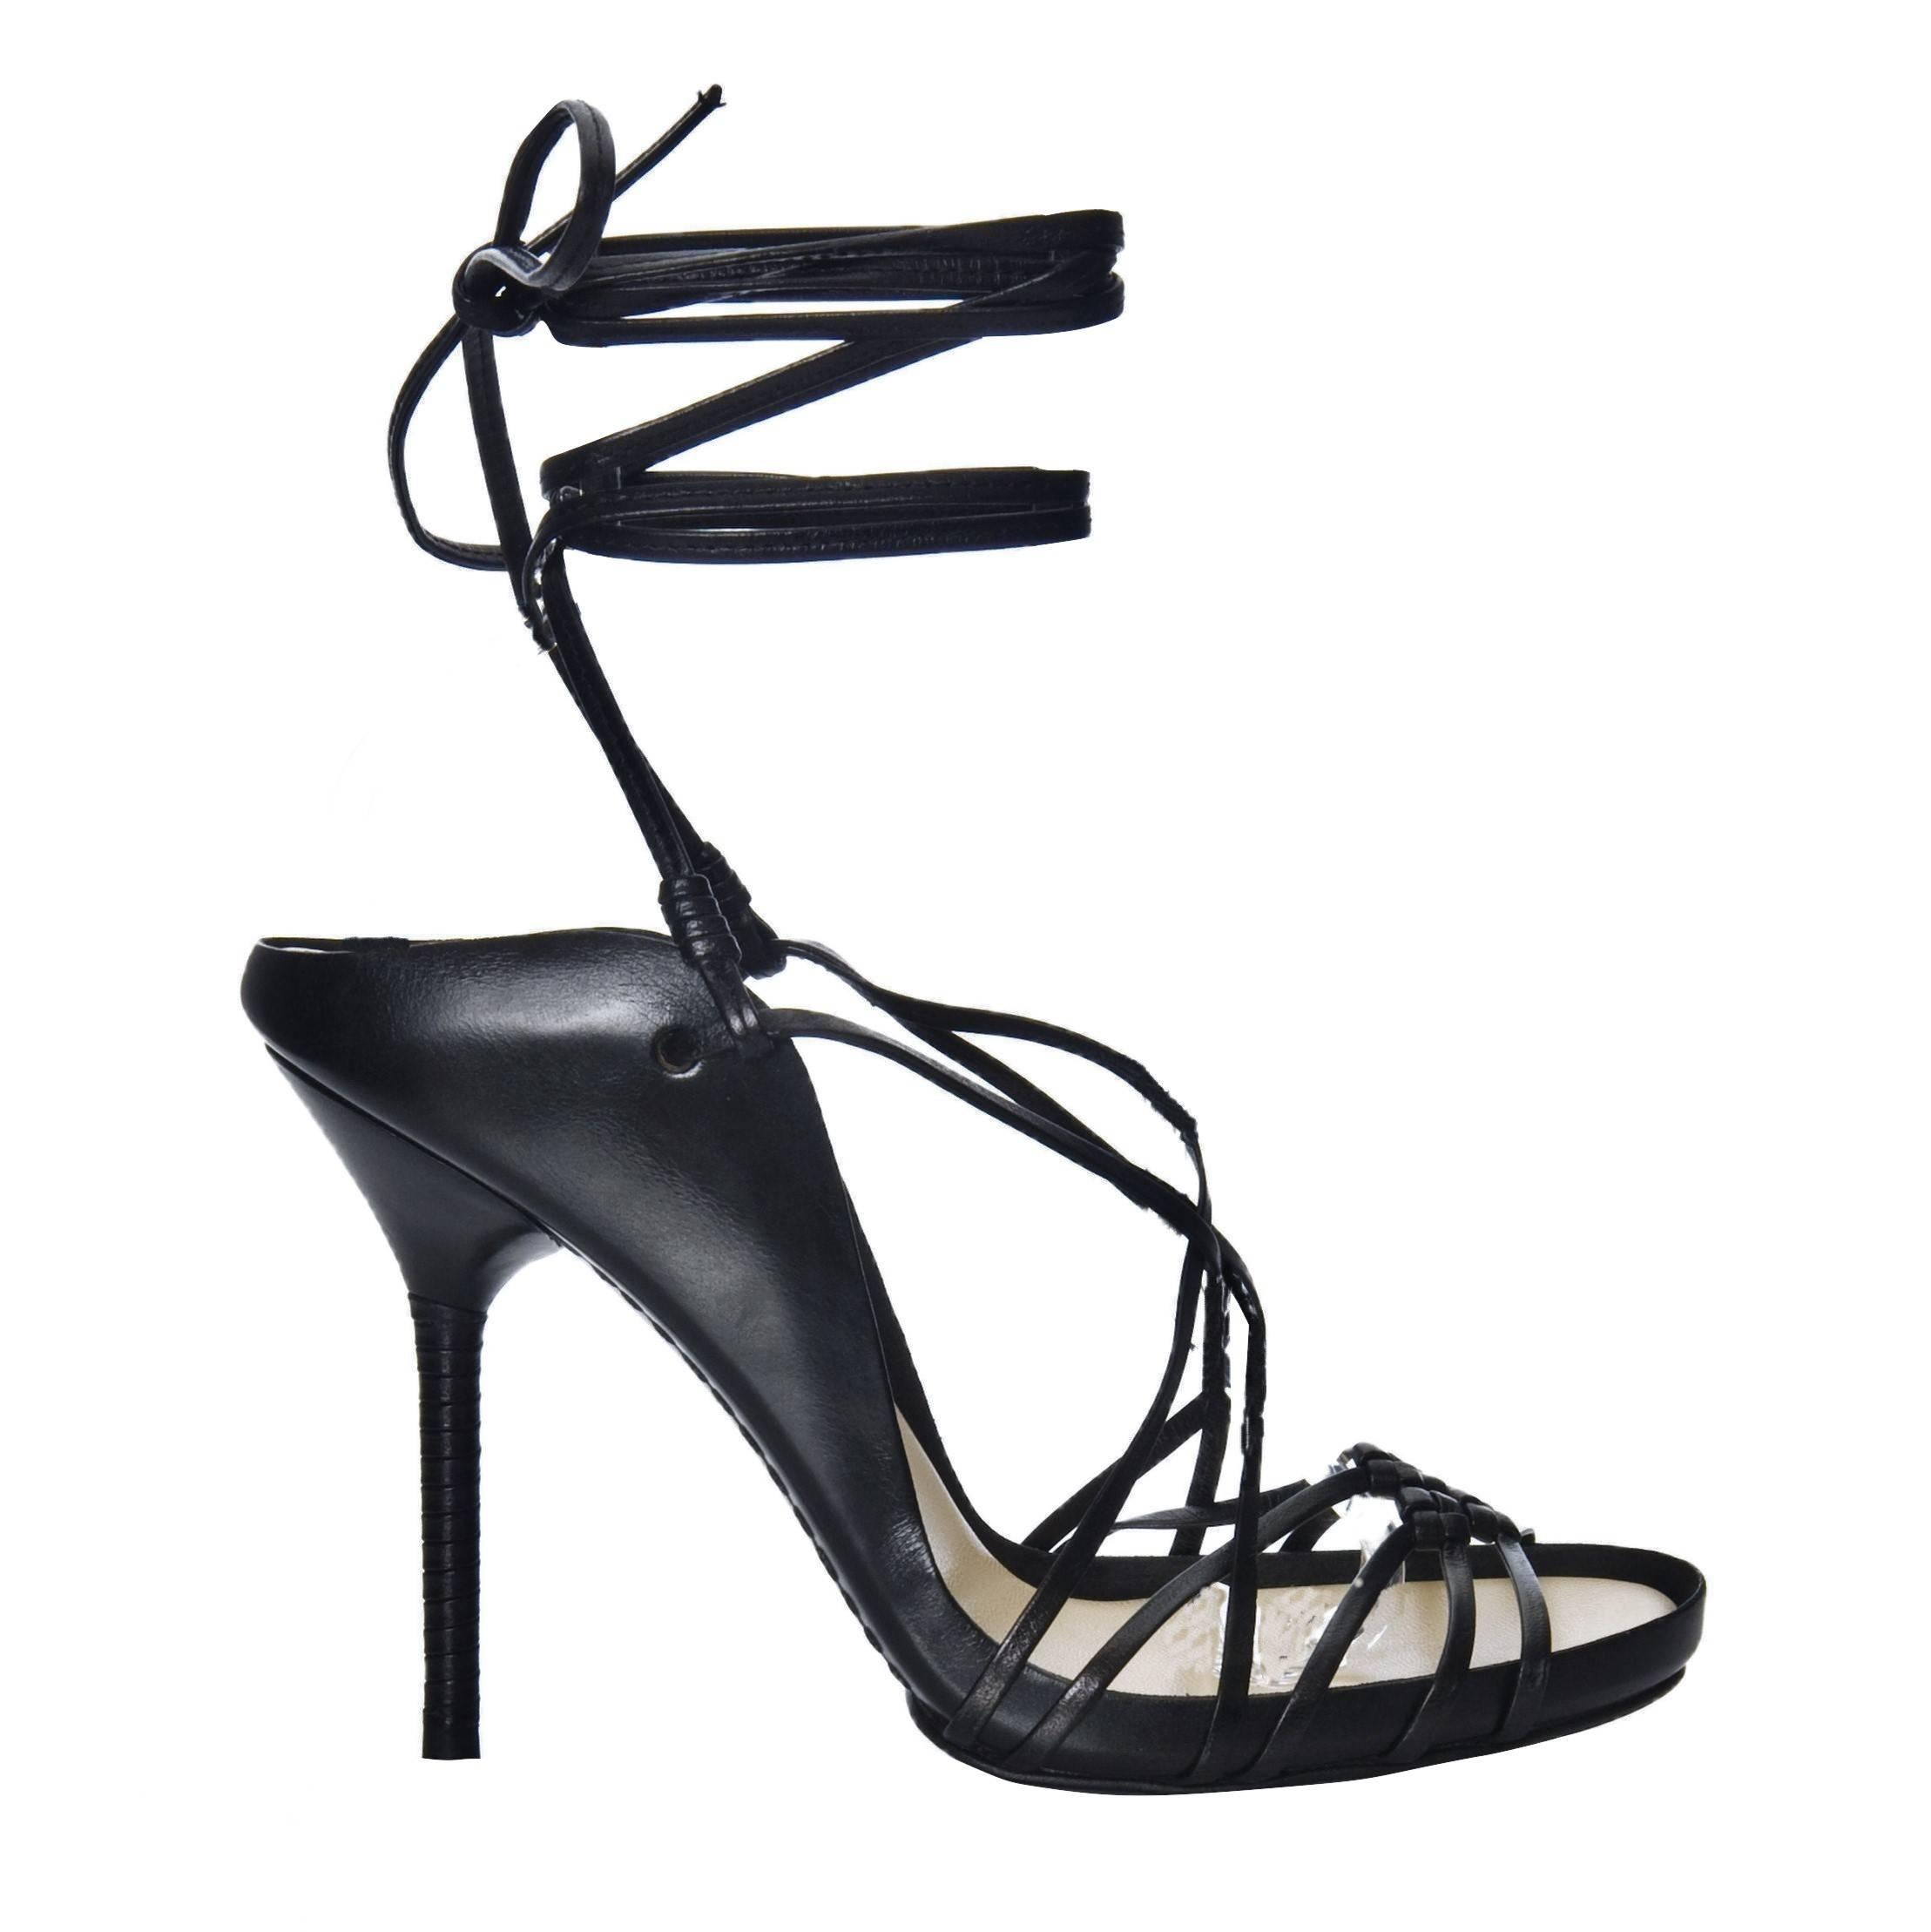 969d91152e9 Vintage Size 38 Tom Ford for Gucci Strappy Woven Heels at 1stdibs